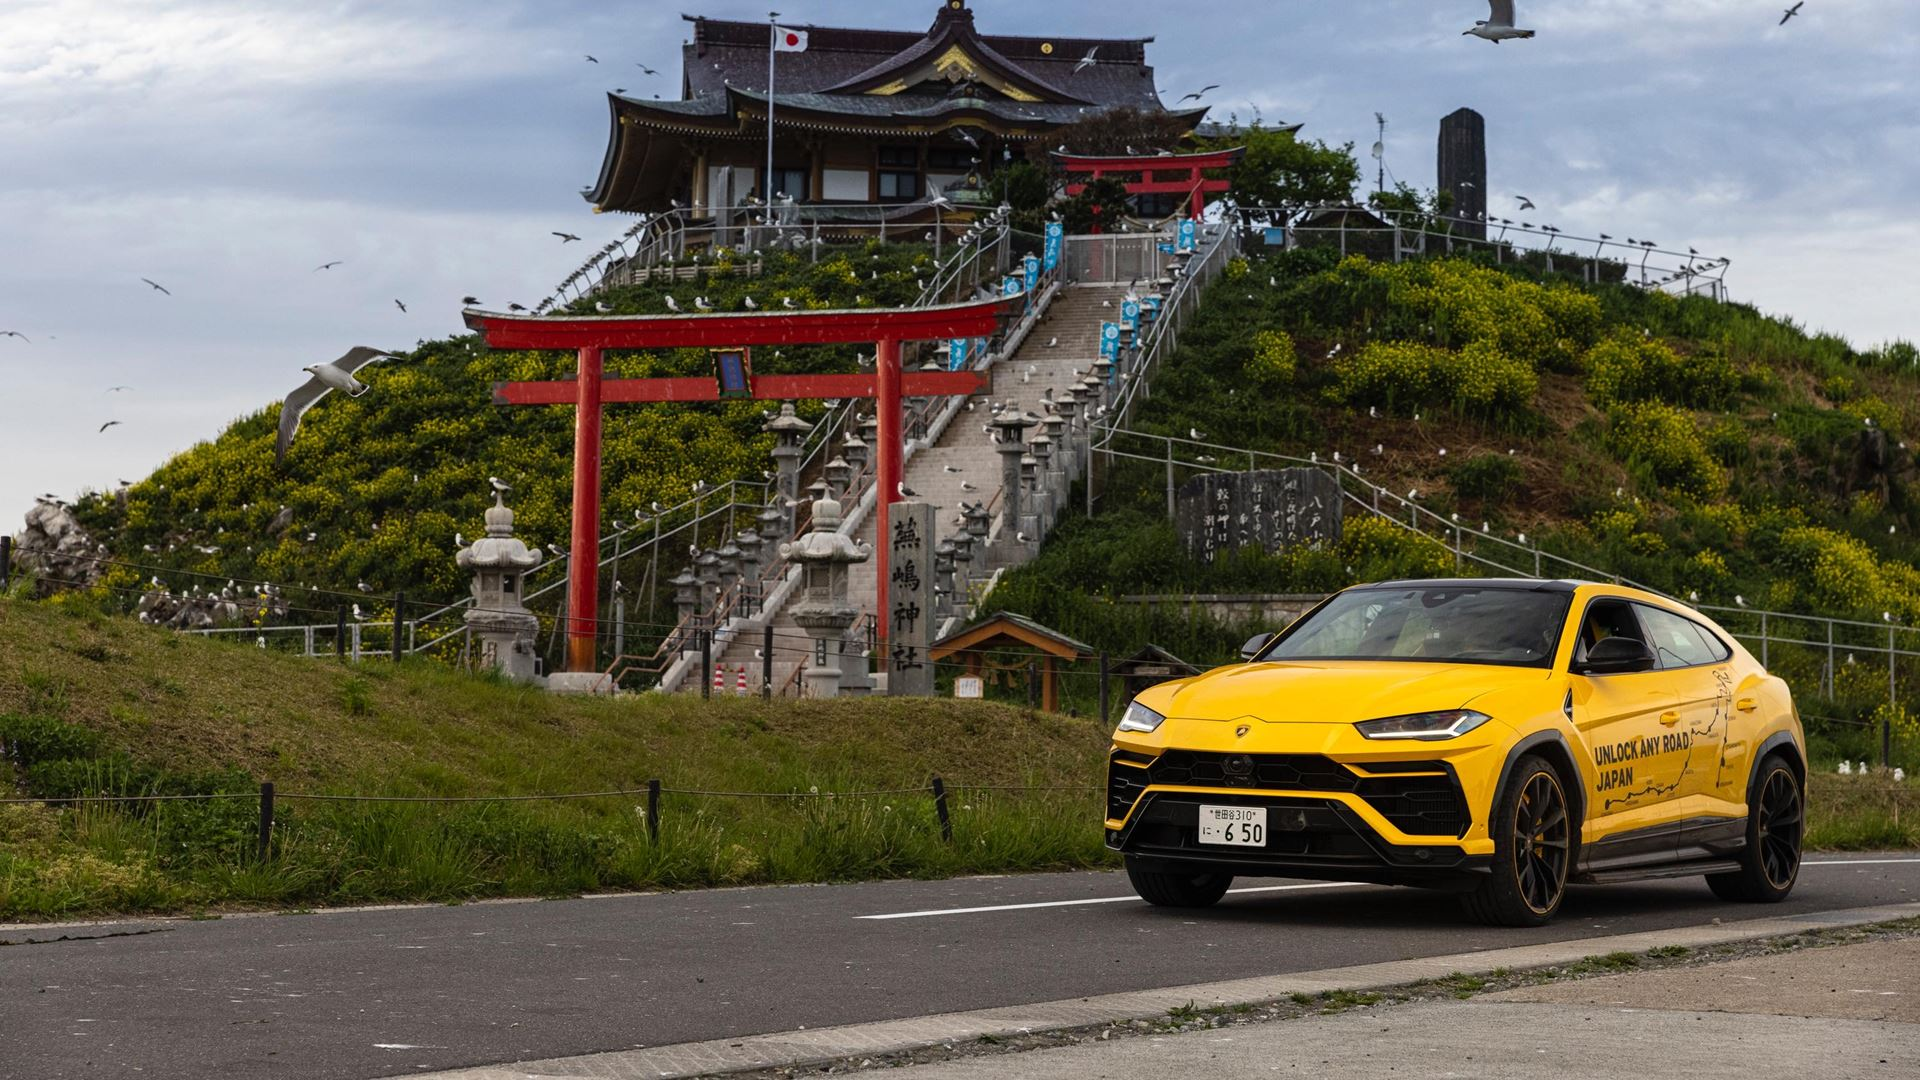 """""""UNLOCK ANY ROAD JAPAN"""" Urus expedition over 6.500 Km across Japan - Image 3"""